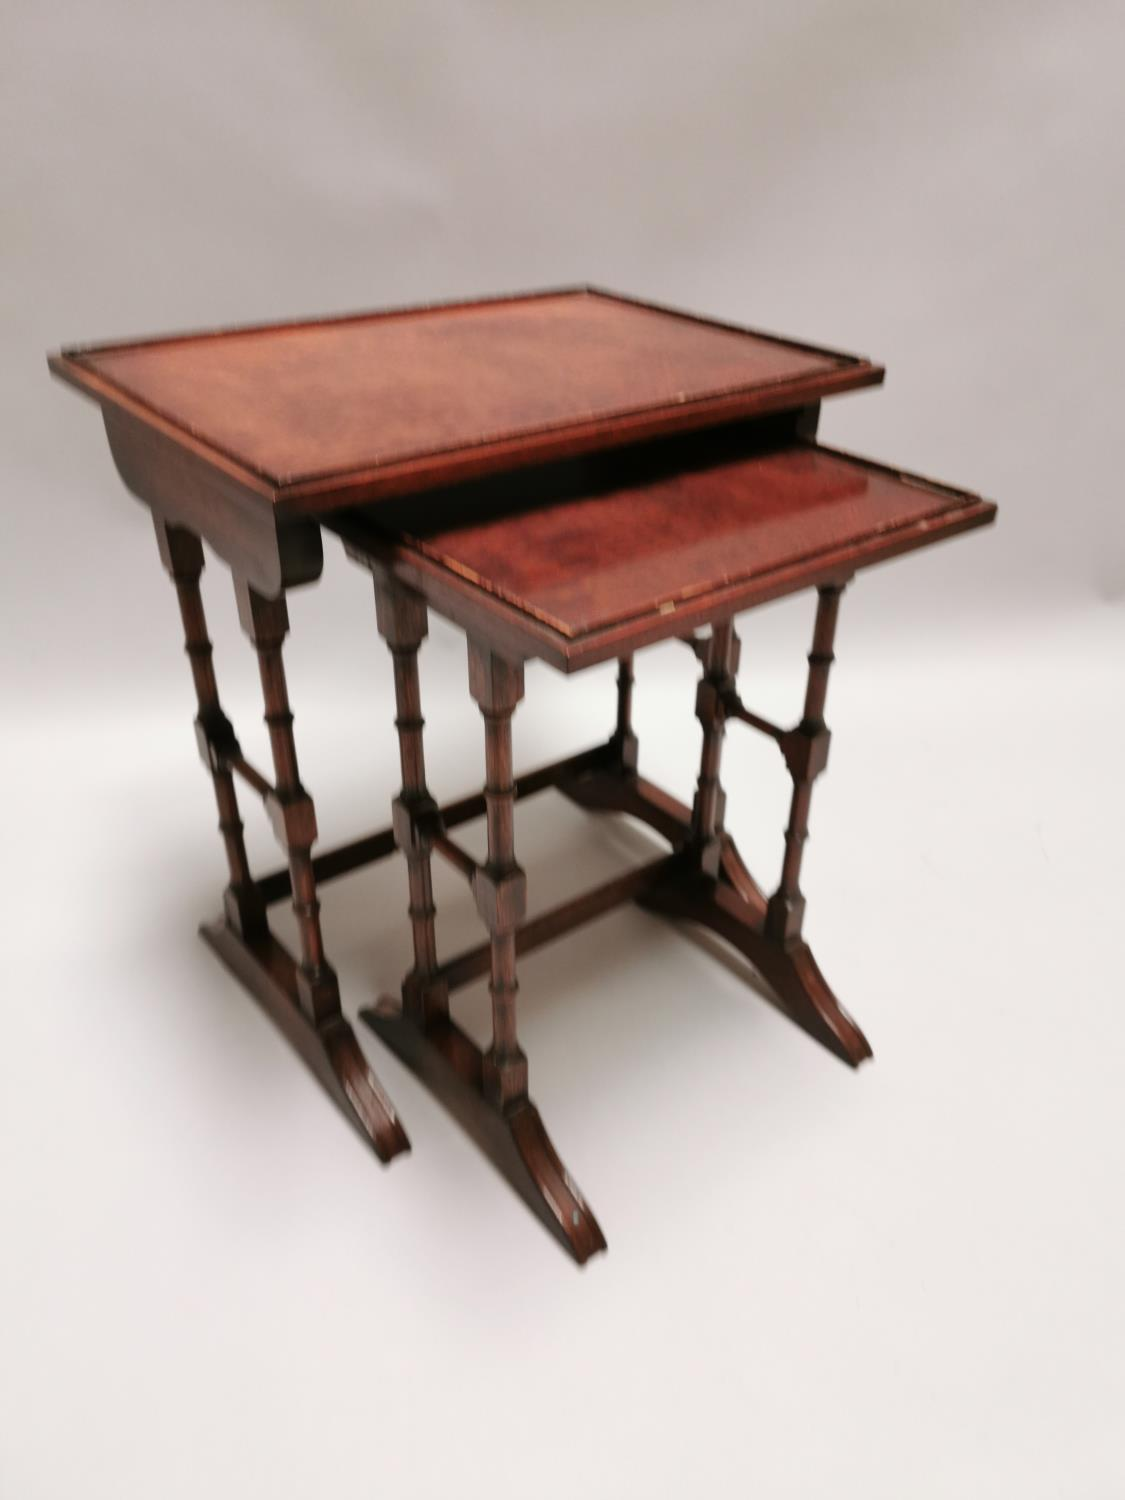 Nest of two mahogany tables